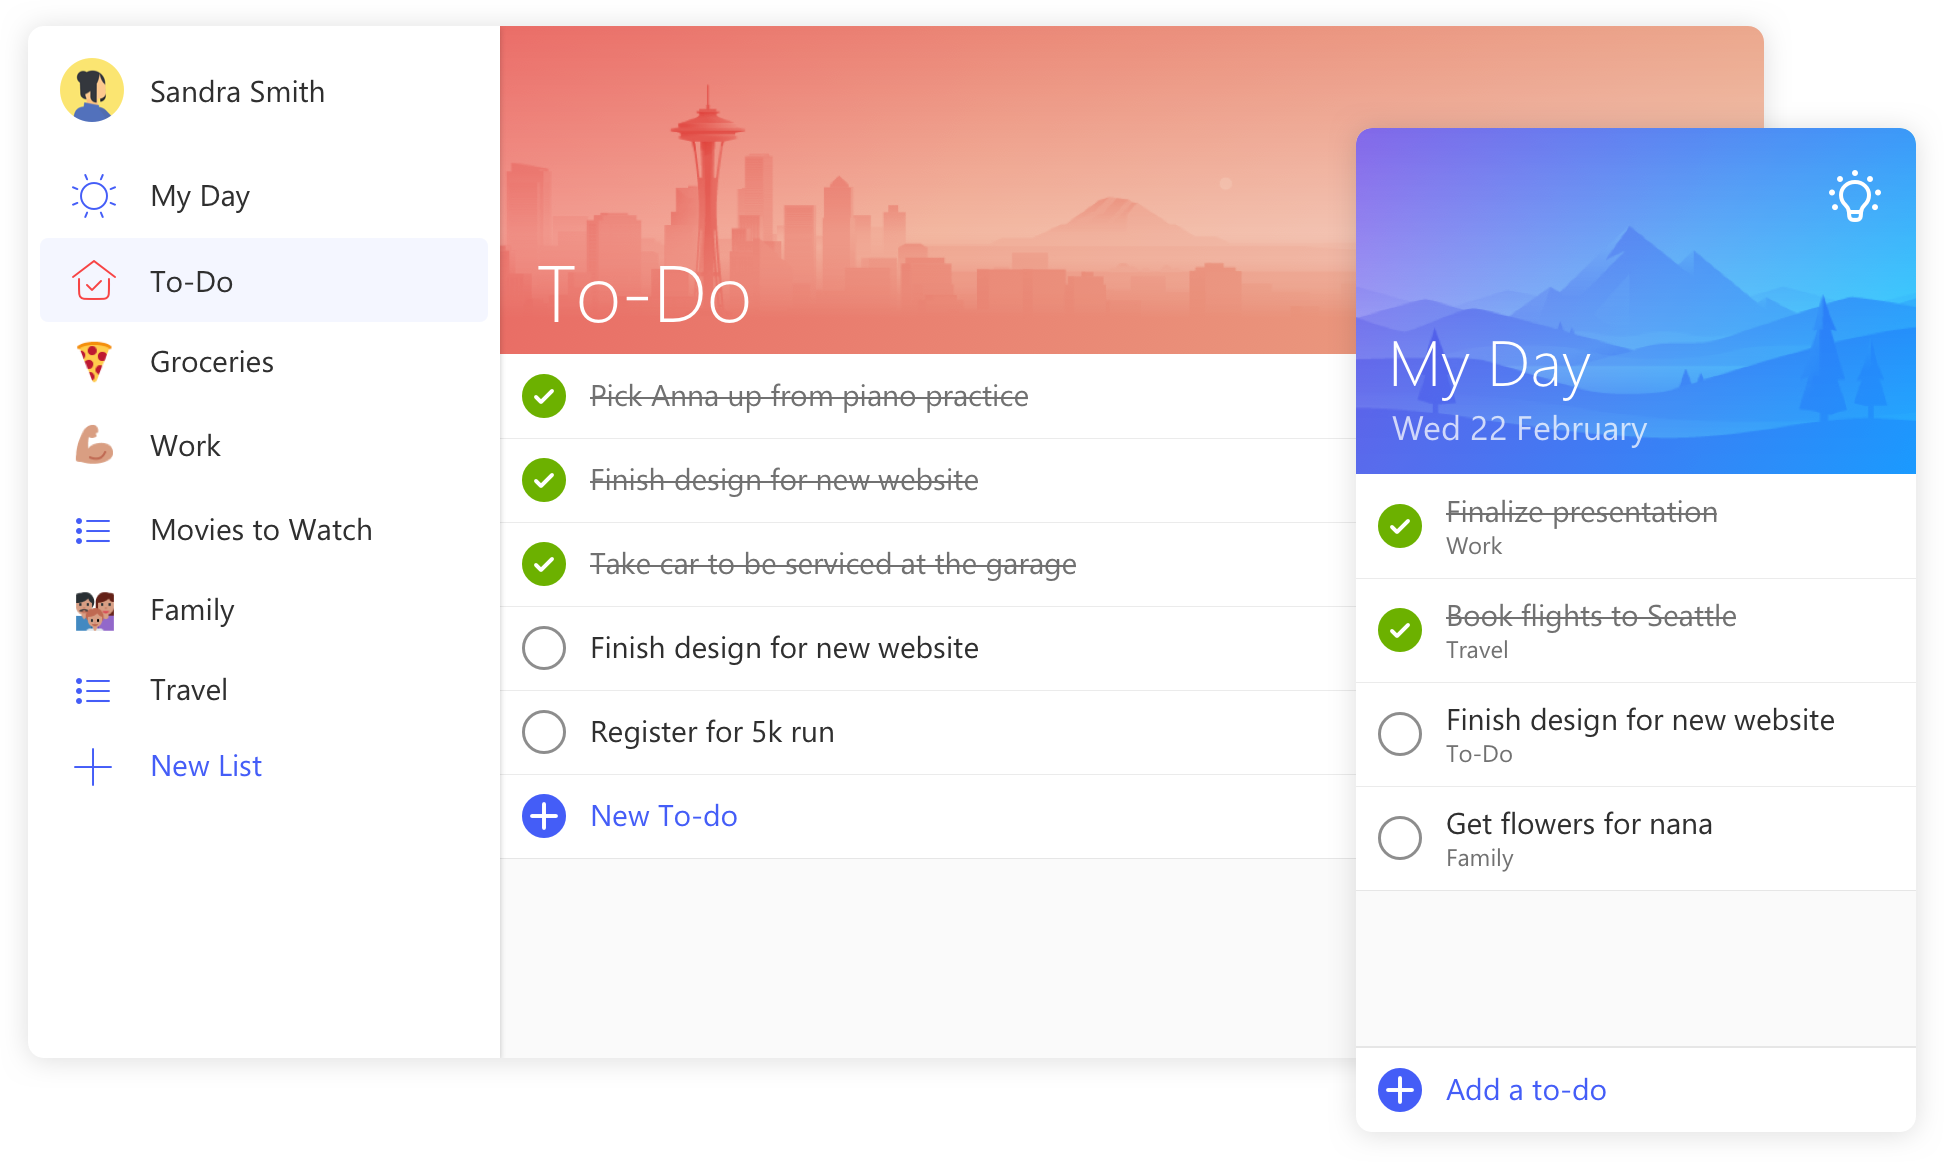 Why Did Microsoft Buy Wunderlist and Then Kill The Product?